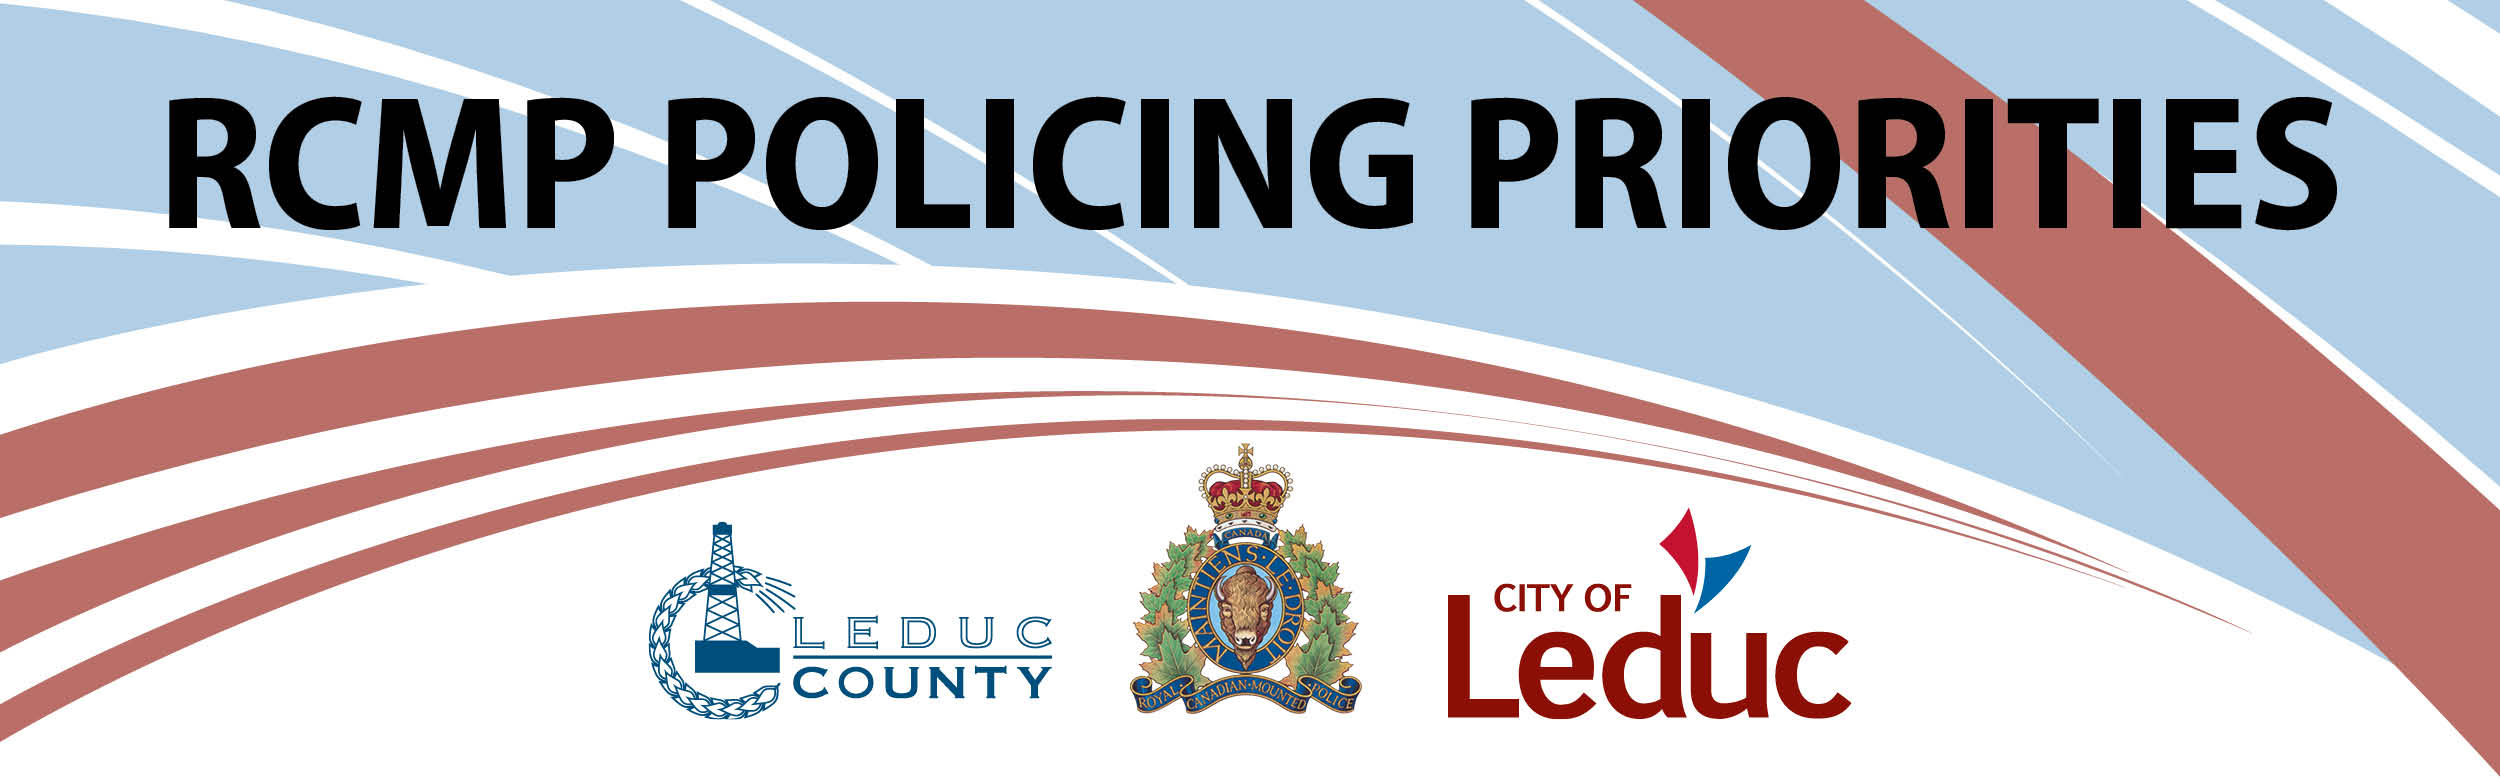 Leduc County and the City of Leduc have partnered